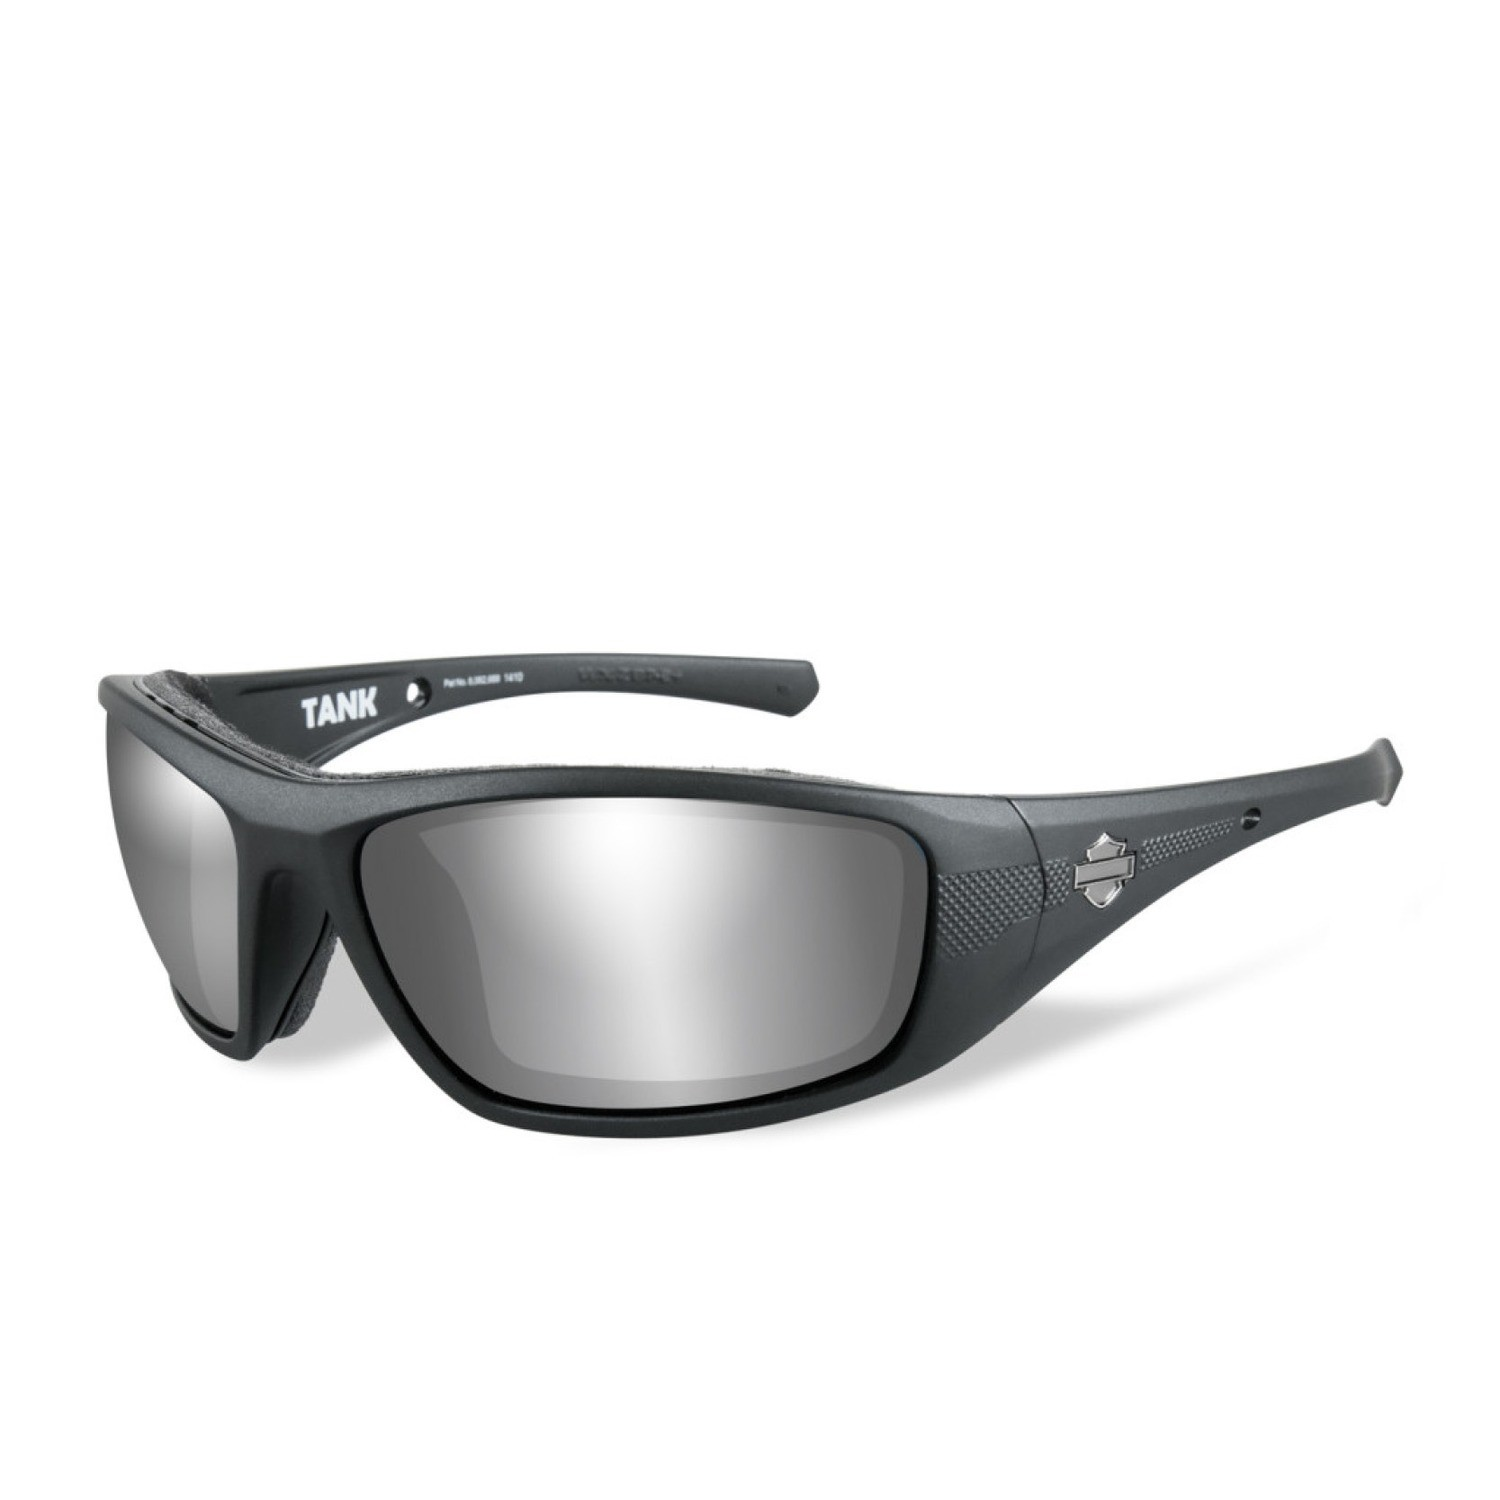 Wiley X HD Tank PPZ™ Silver Flash Smoke Grey Lenses / Matte Black Frame Biker Glasses with Removable Gaskets